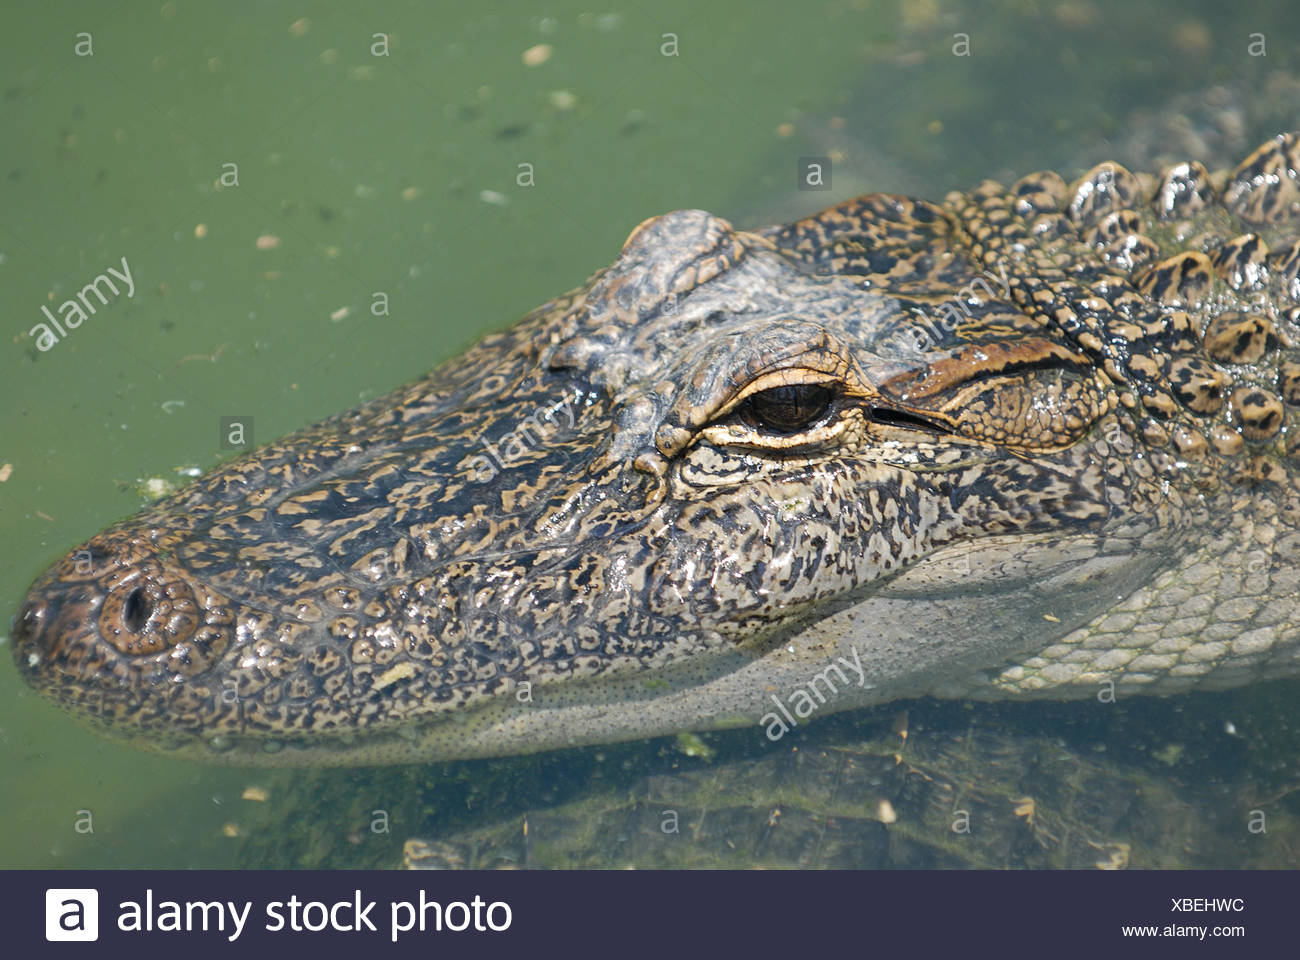 Alligator - Stock Image